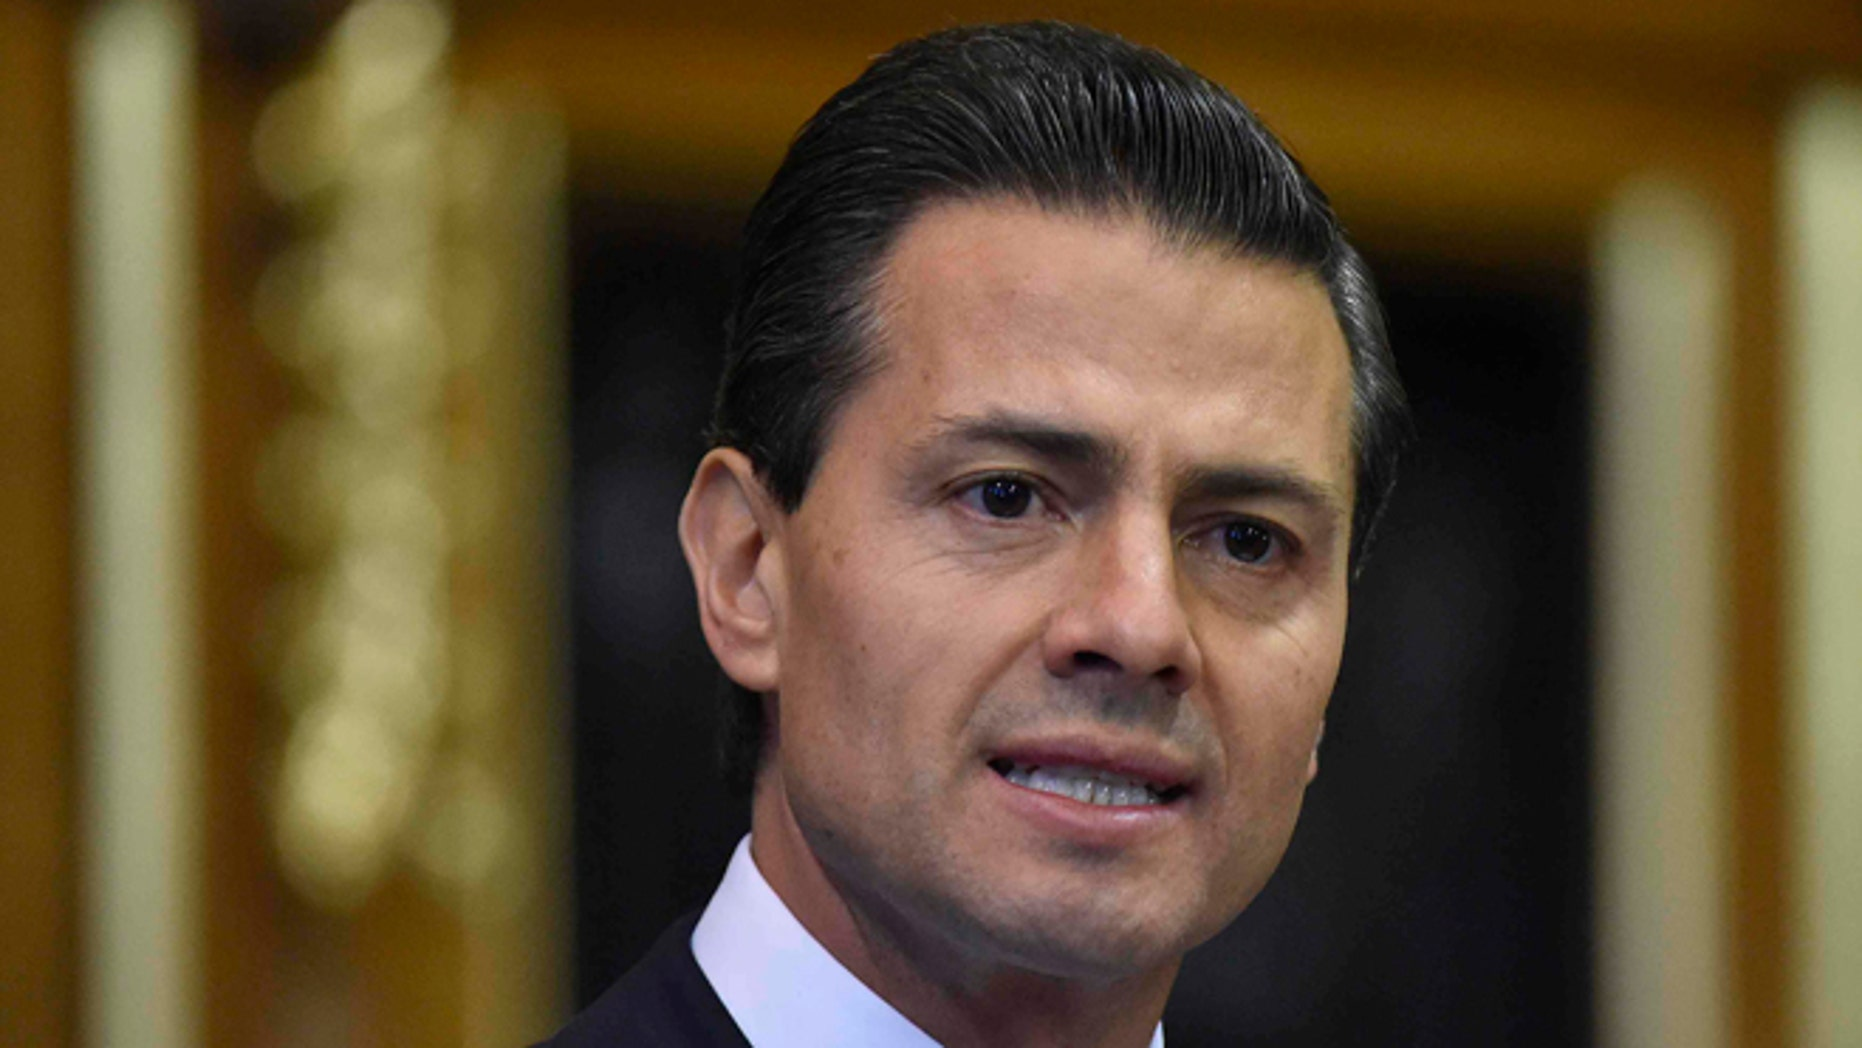 LONDON, ENGLAND - MARCH 03:  Mexico's President Enrique Pena Nieto delivers an address to members of the British All-Party Parliamentary Group at the Houses of Parliament on March 3, 2015 in London, England.  The President of Mexico, accompanied by Senora Angelica Rivera de Pena, are on a State Visit to the United Kingdom as the guests of Her Majesty The Queen from Tuesday 3rd March to Thursday 5th March.  (Photo by Toby Melville - WPA Pool /Getty Images)